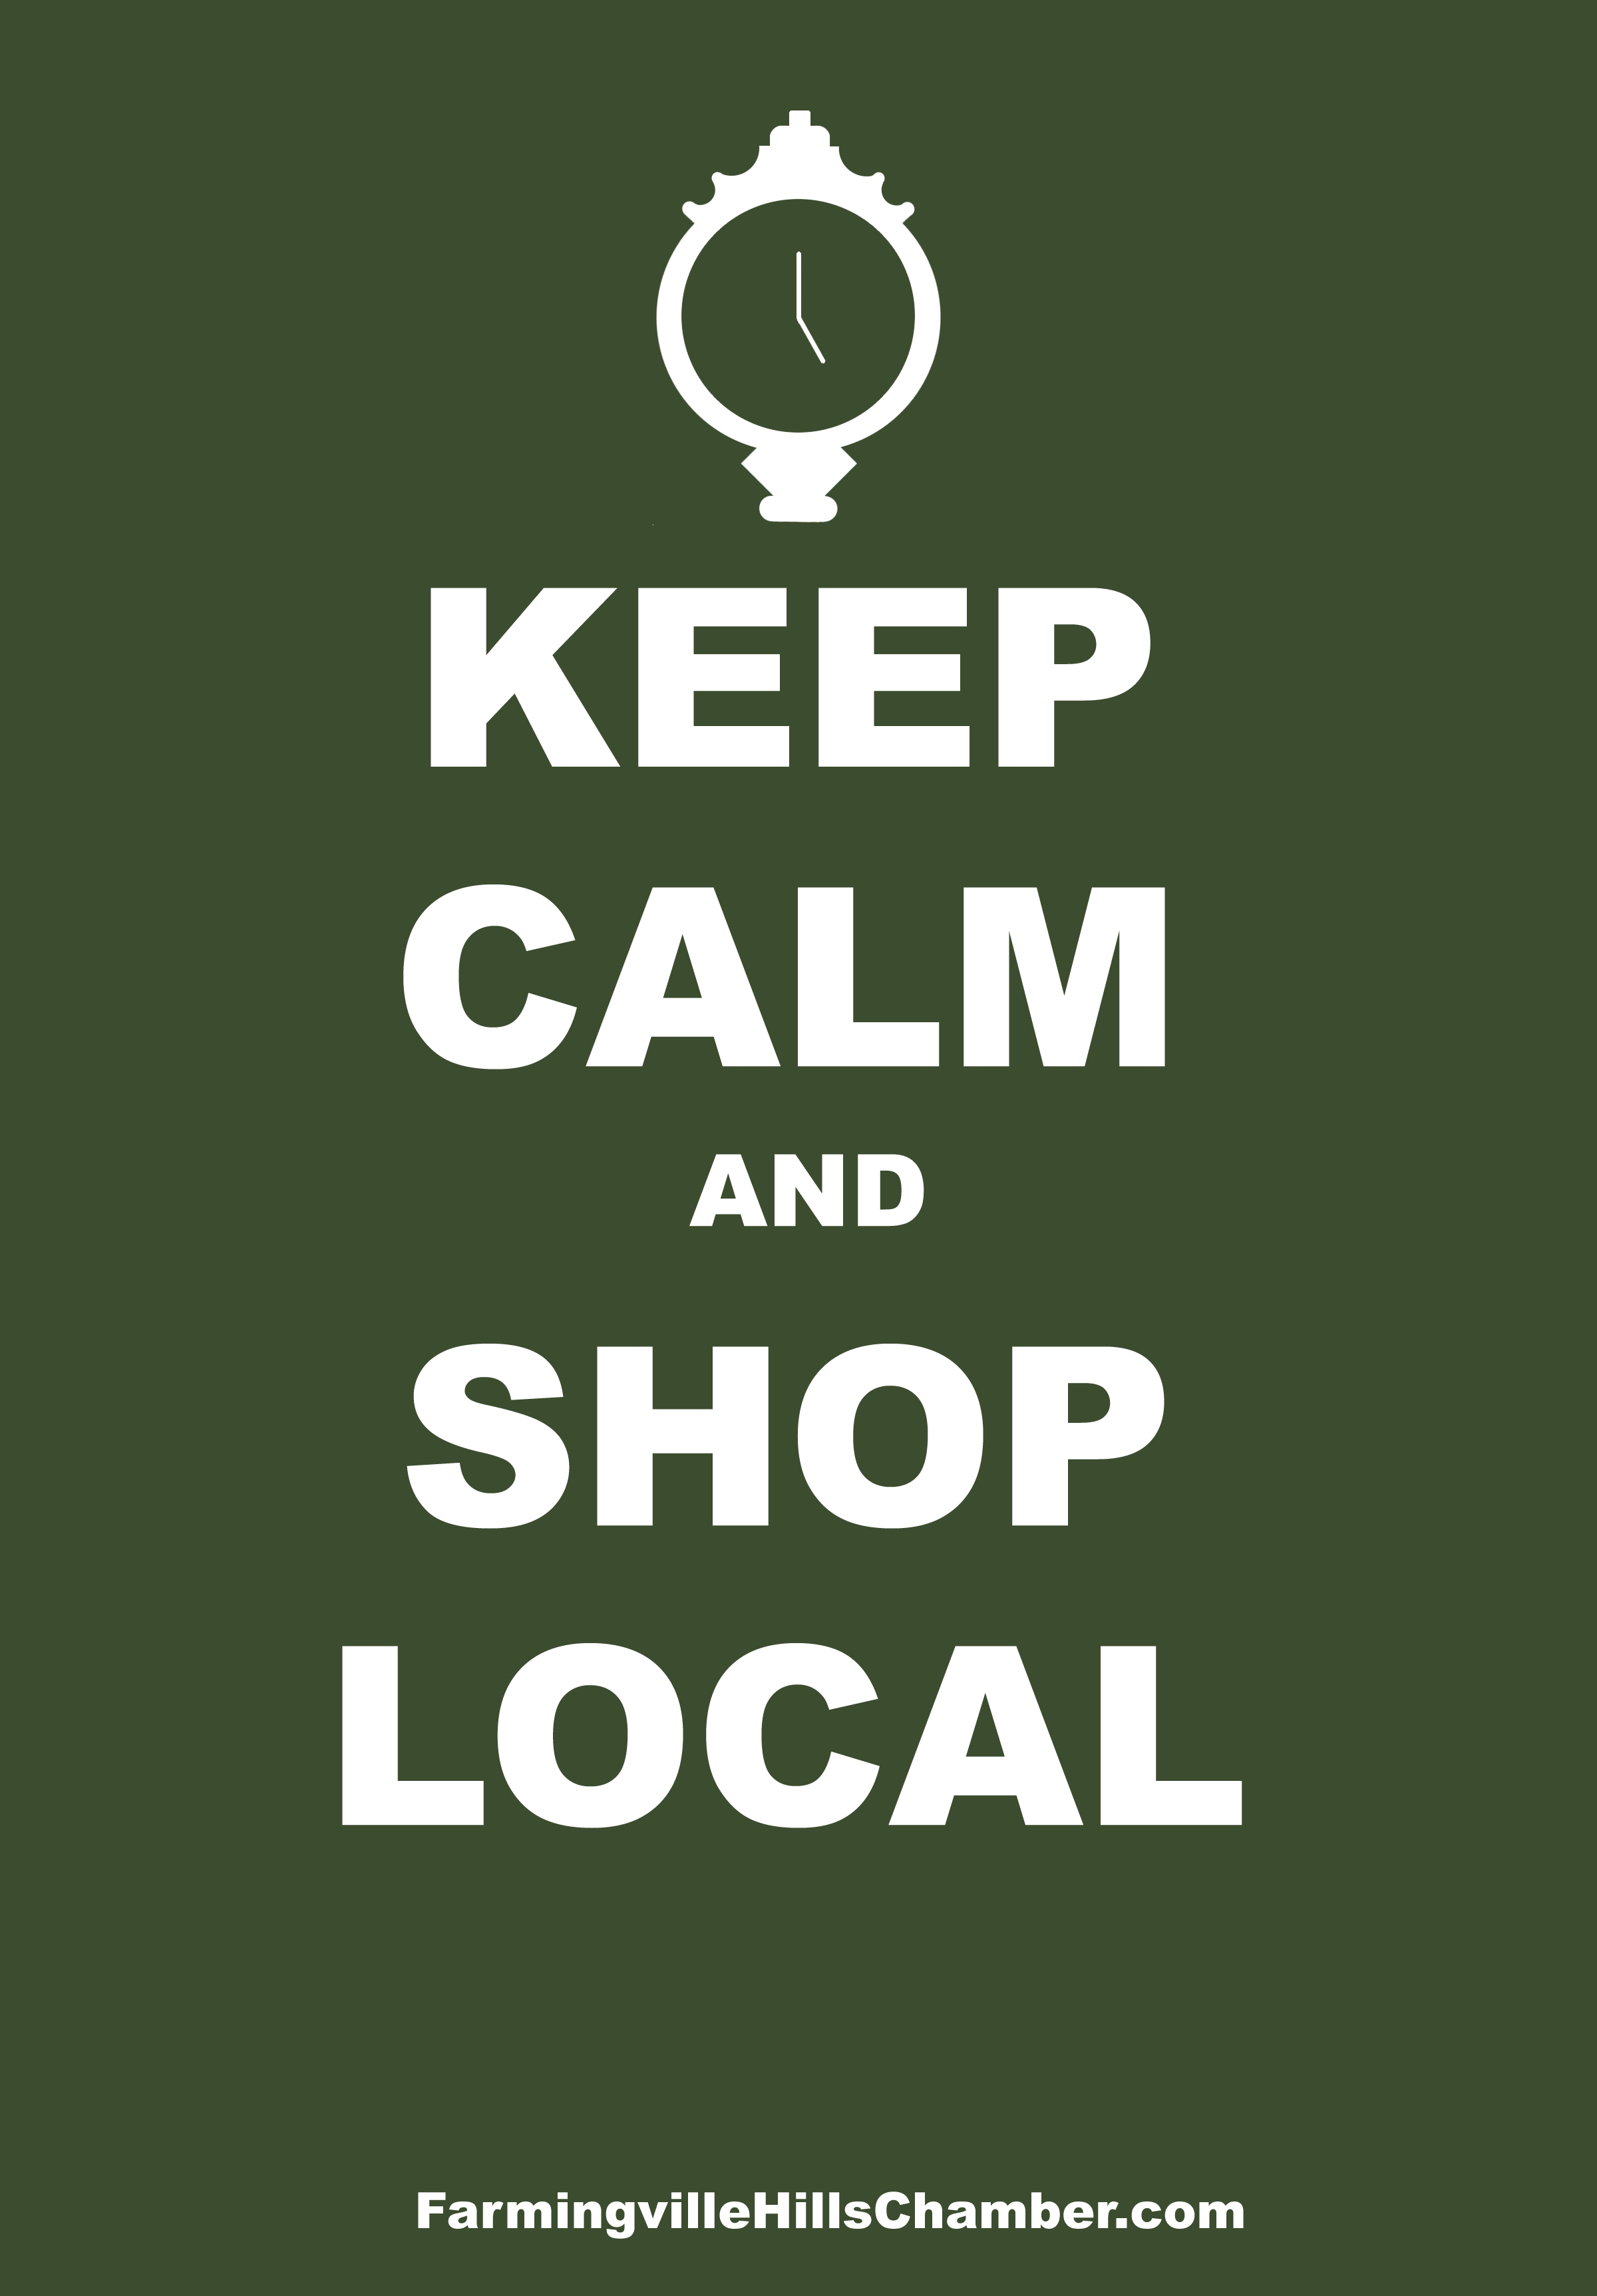 Shop Farmingville Hills Chamber of Commerce, Inc.